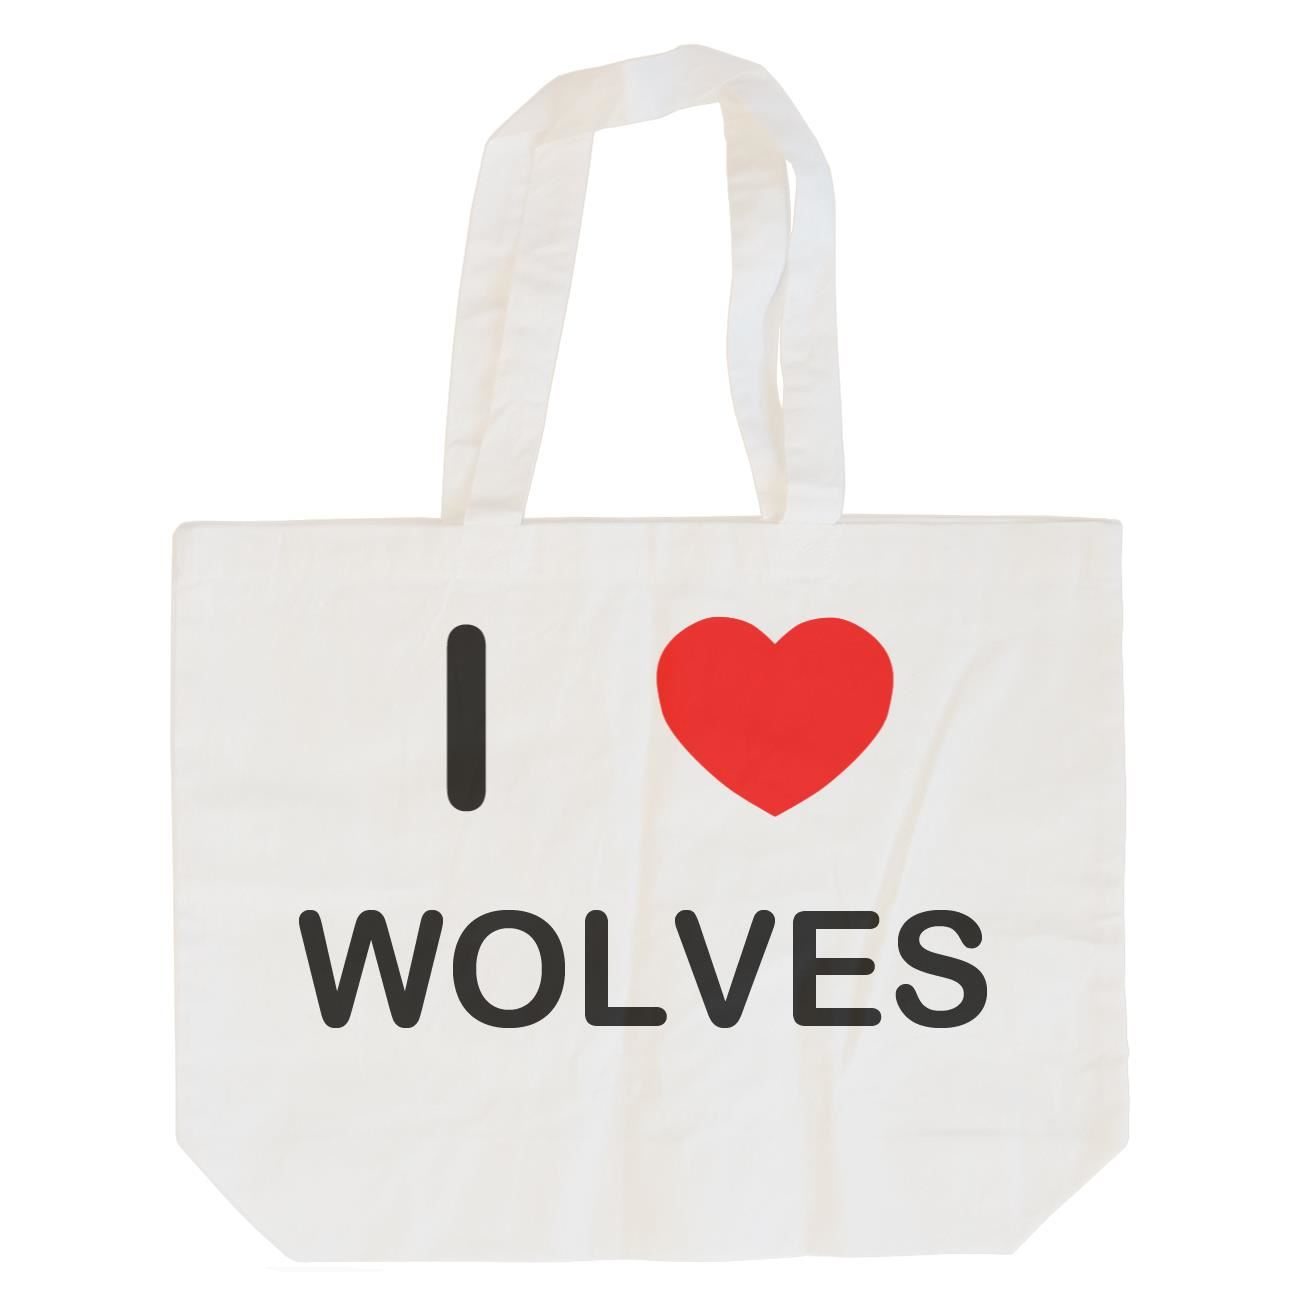 I Love Wolves - Cotton Bag | Size choice Tote, Shopper or Sling